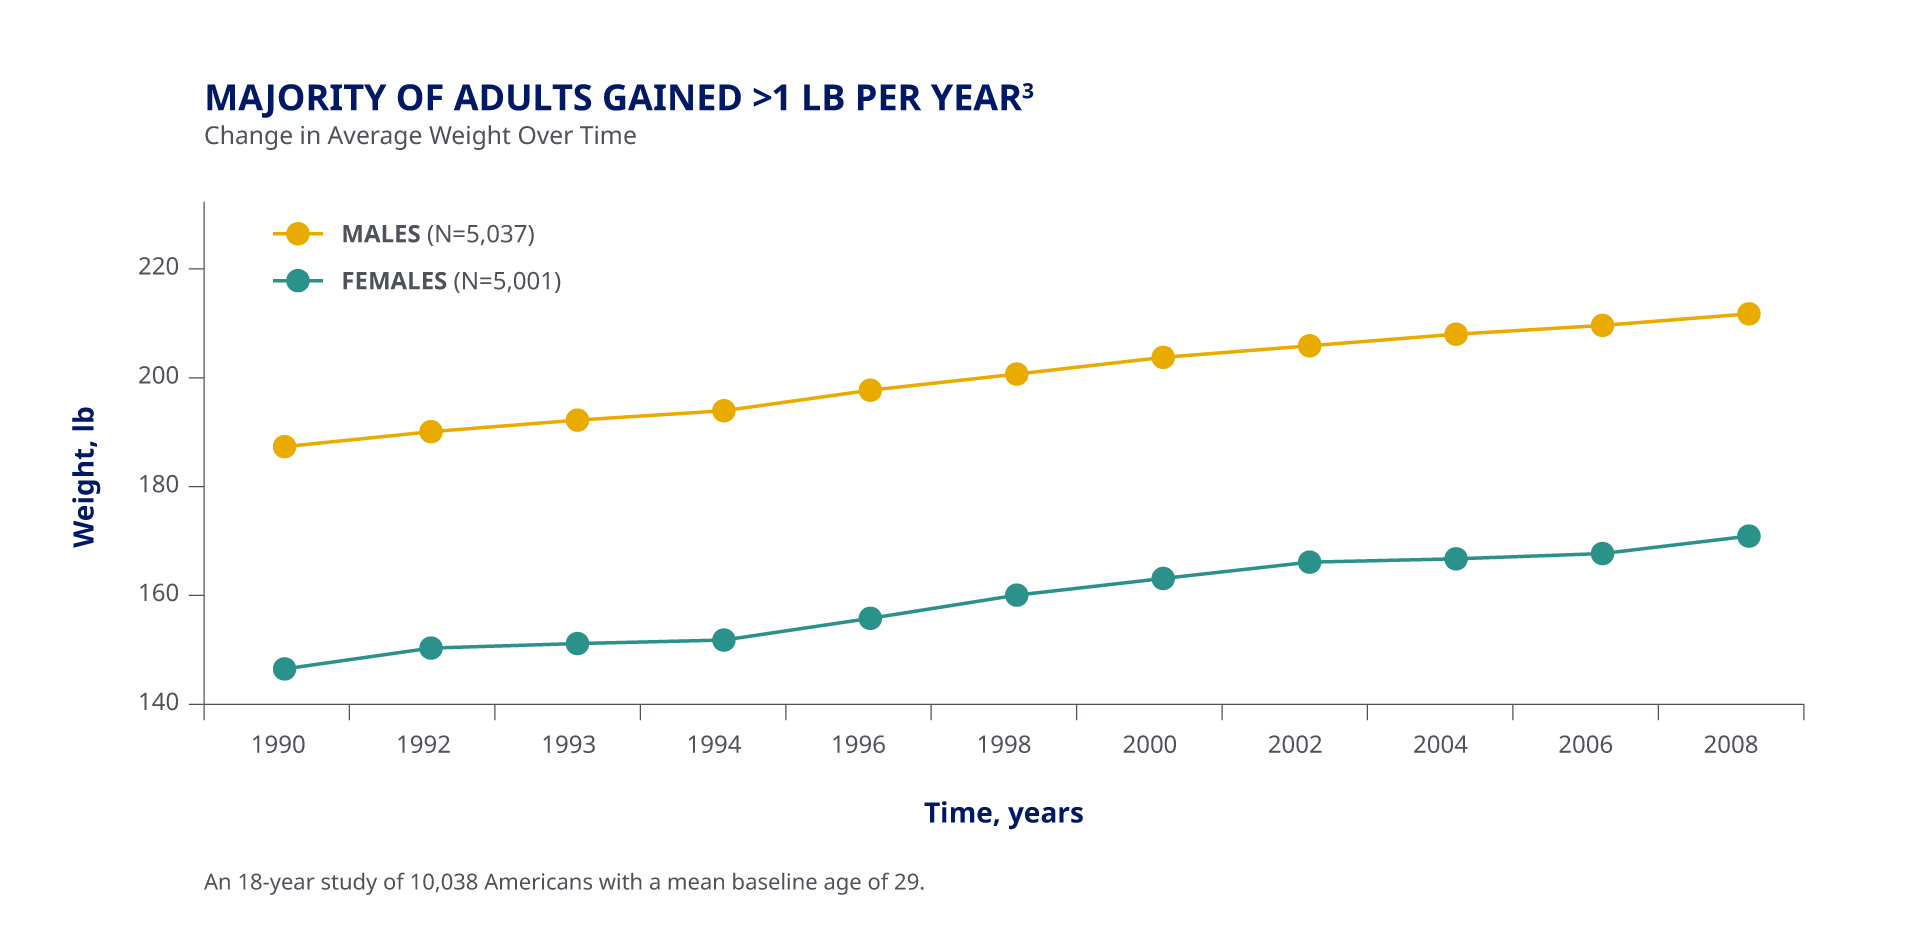 Chart of change in average weight over time in adults. Majority of adults gained greater than 1 pound per year.